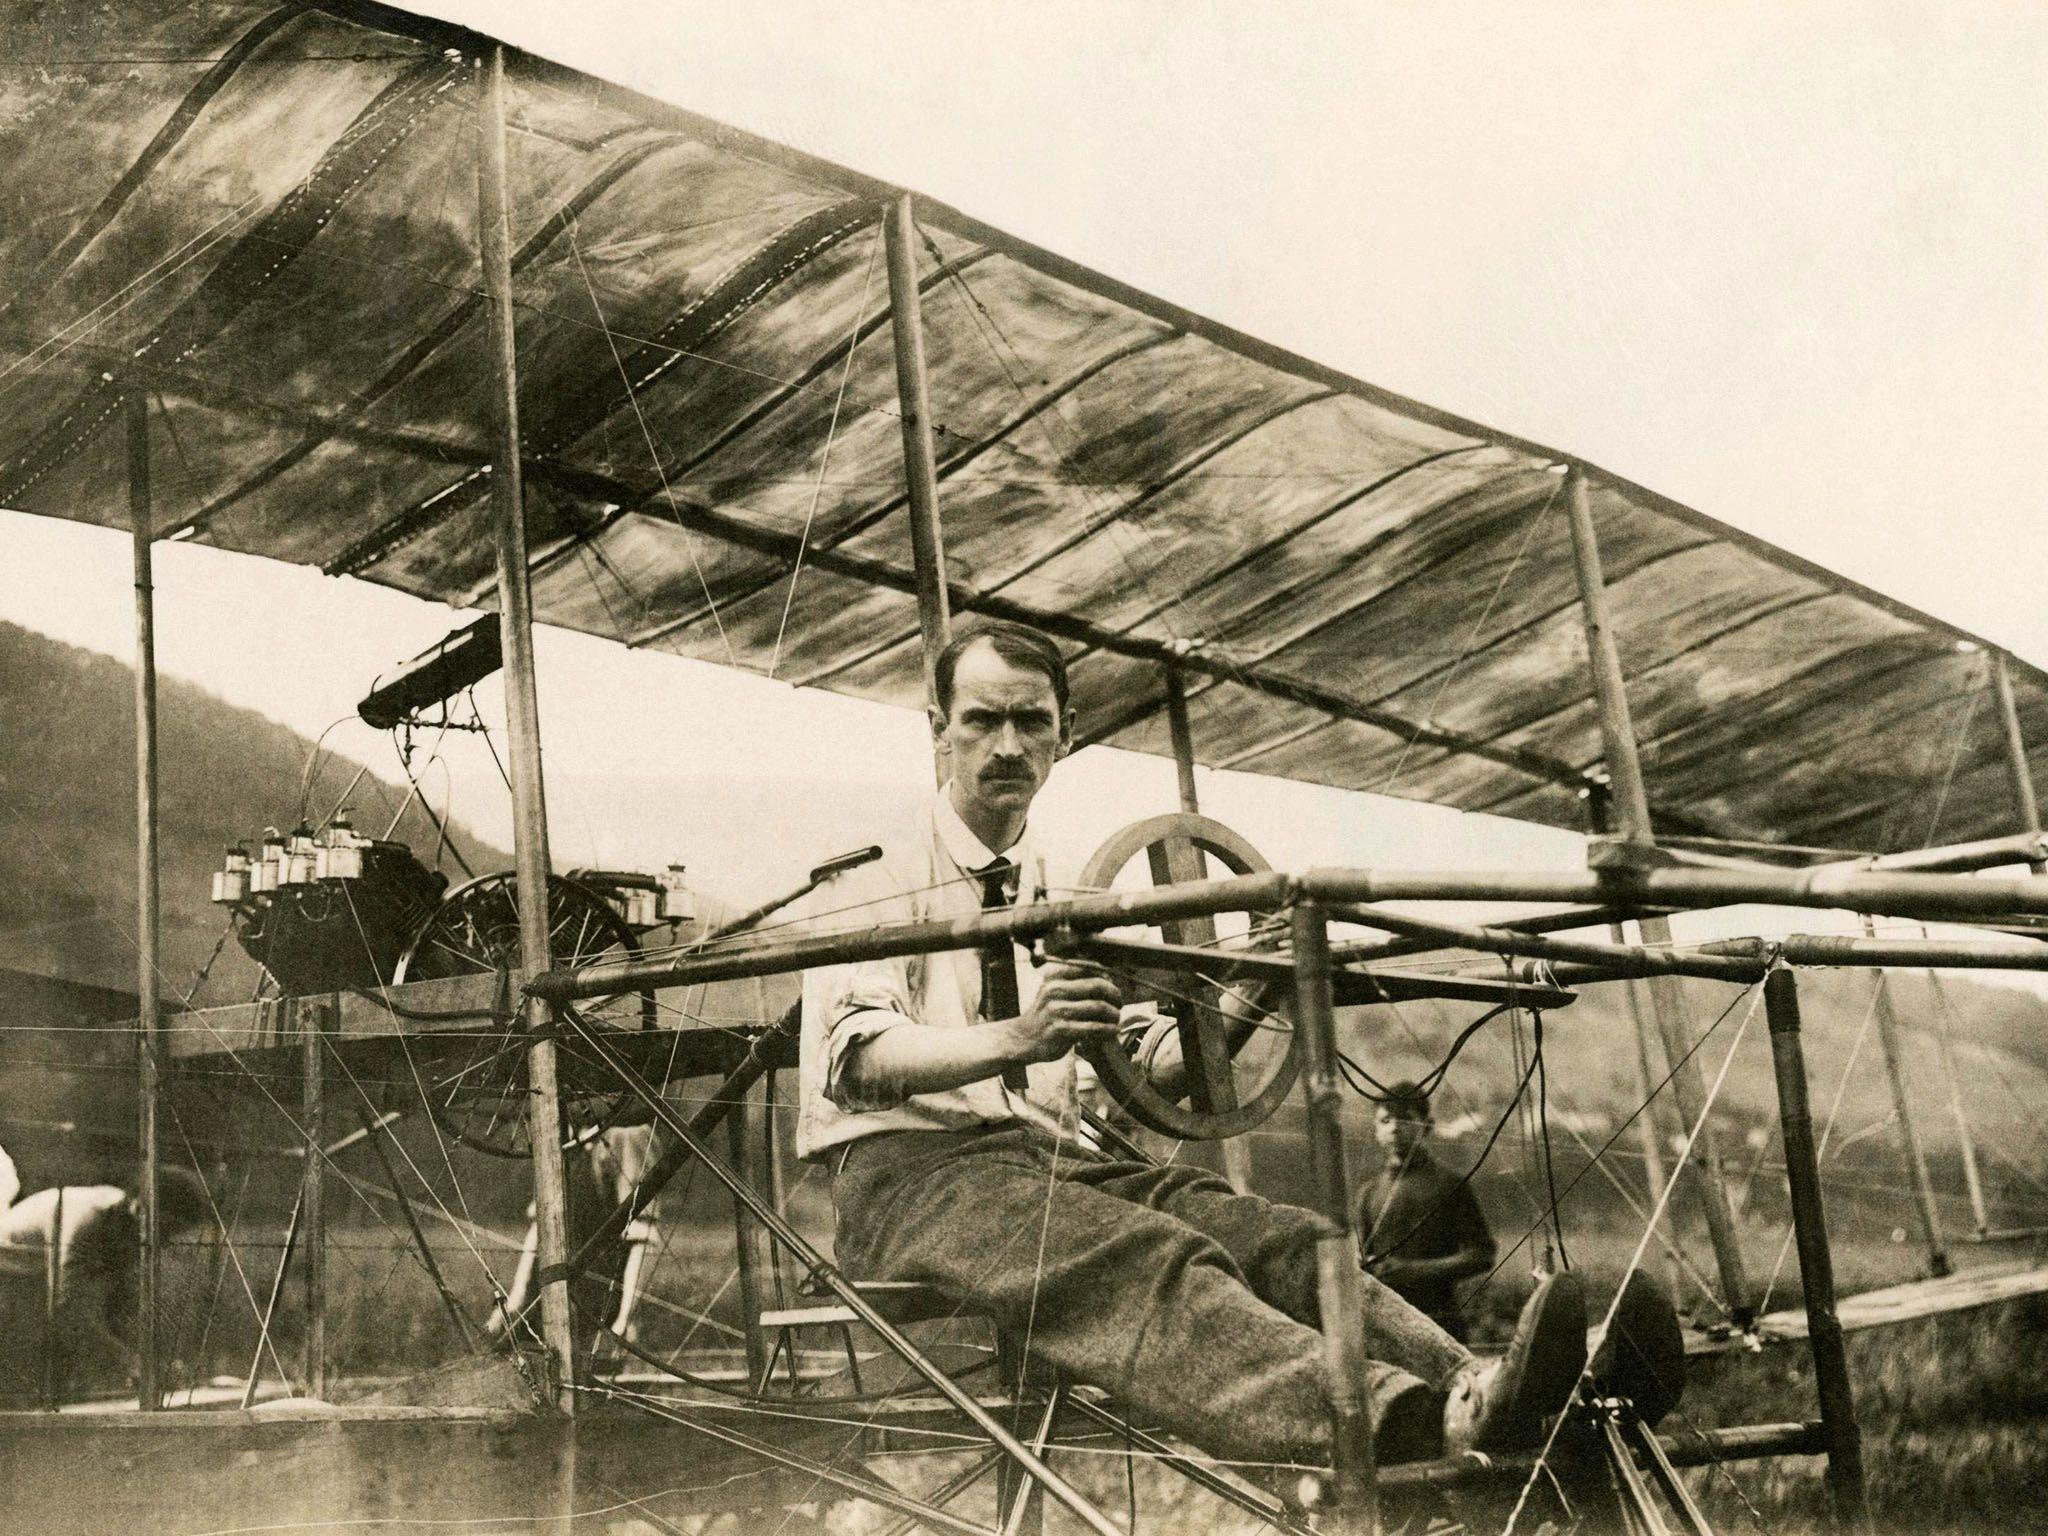 Glenn Curtiss in his Biplane, July 4, 1908. This image is from American Genius. [Фото дня - Август 2015]